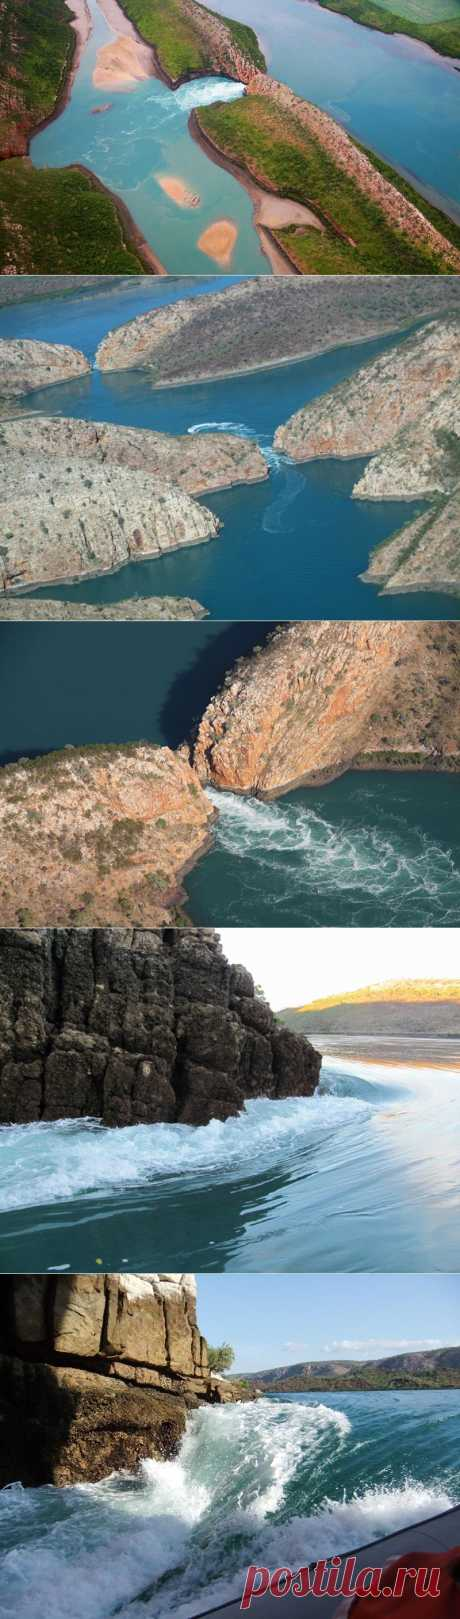 Horizontal falls of a bay of Talbot | In the world of interesting